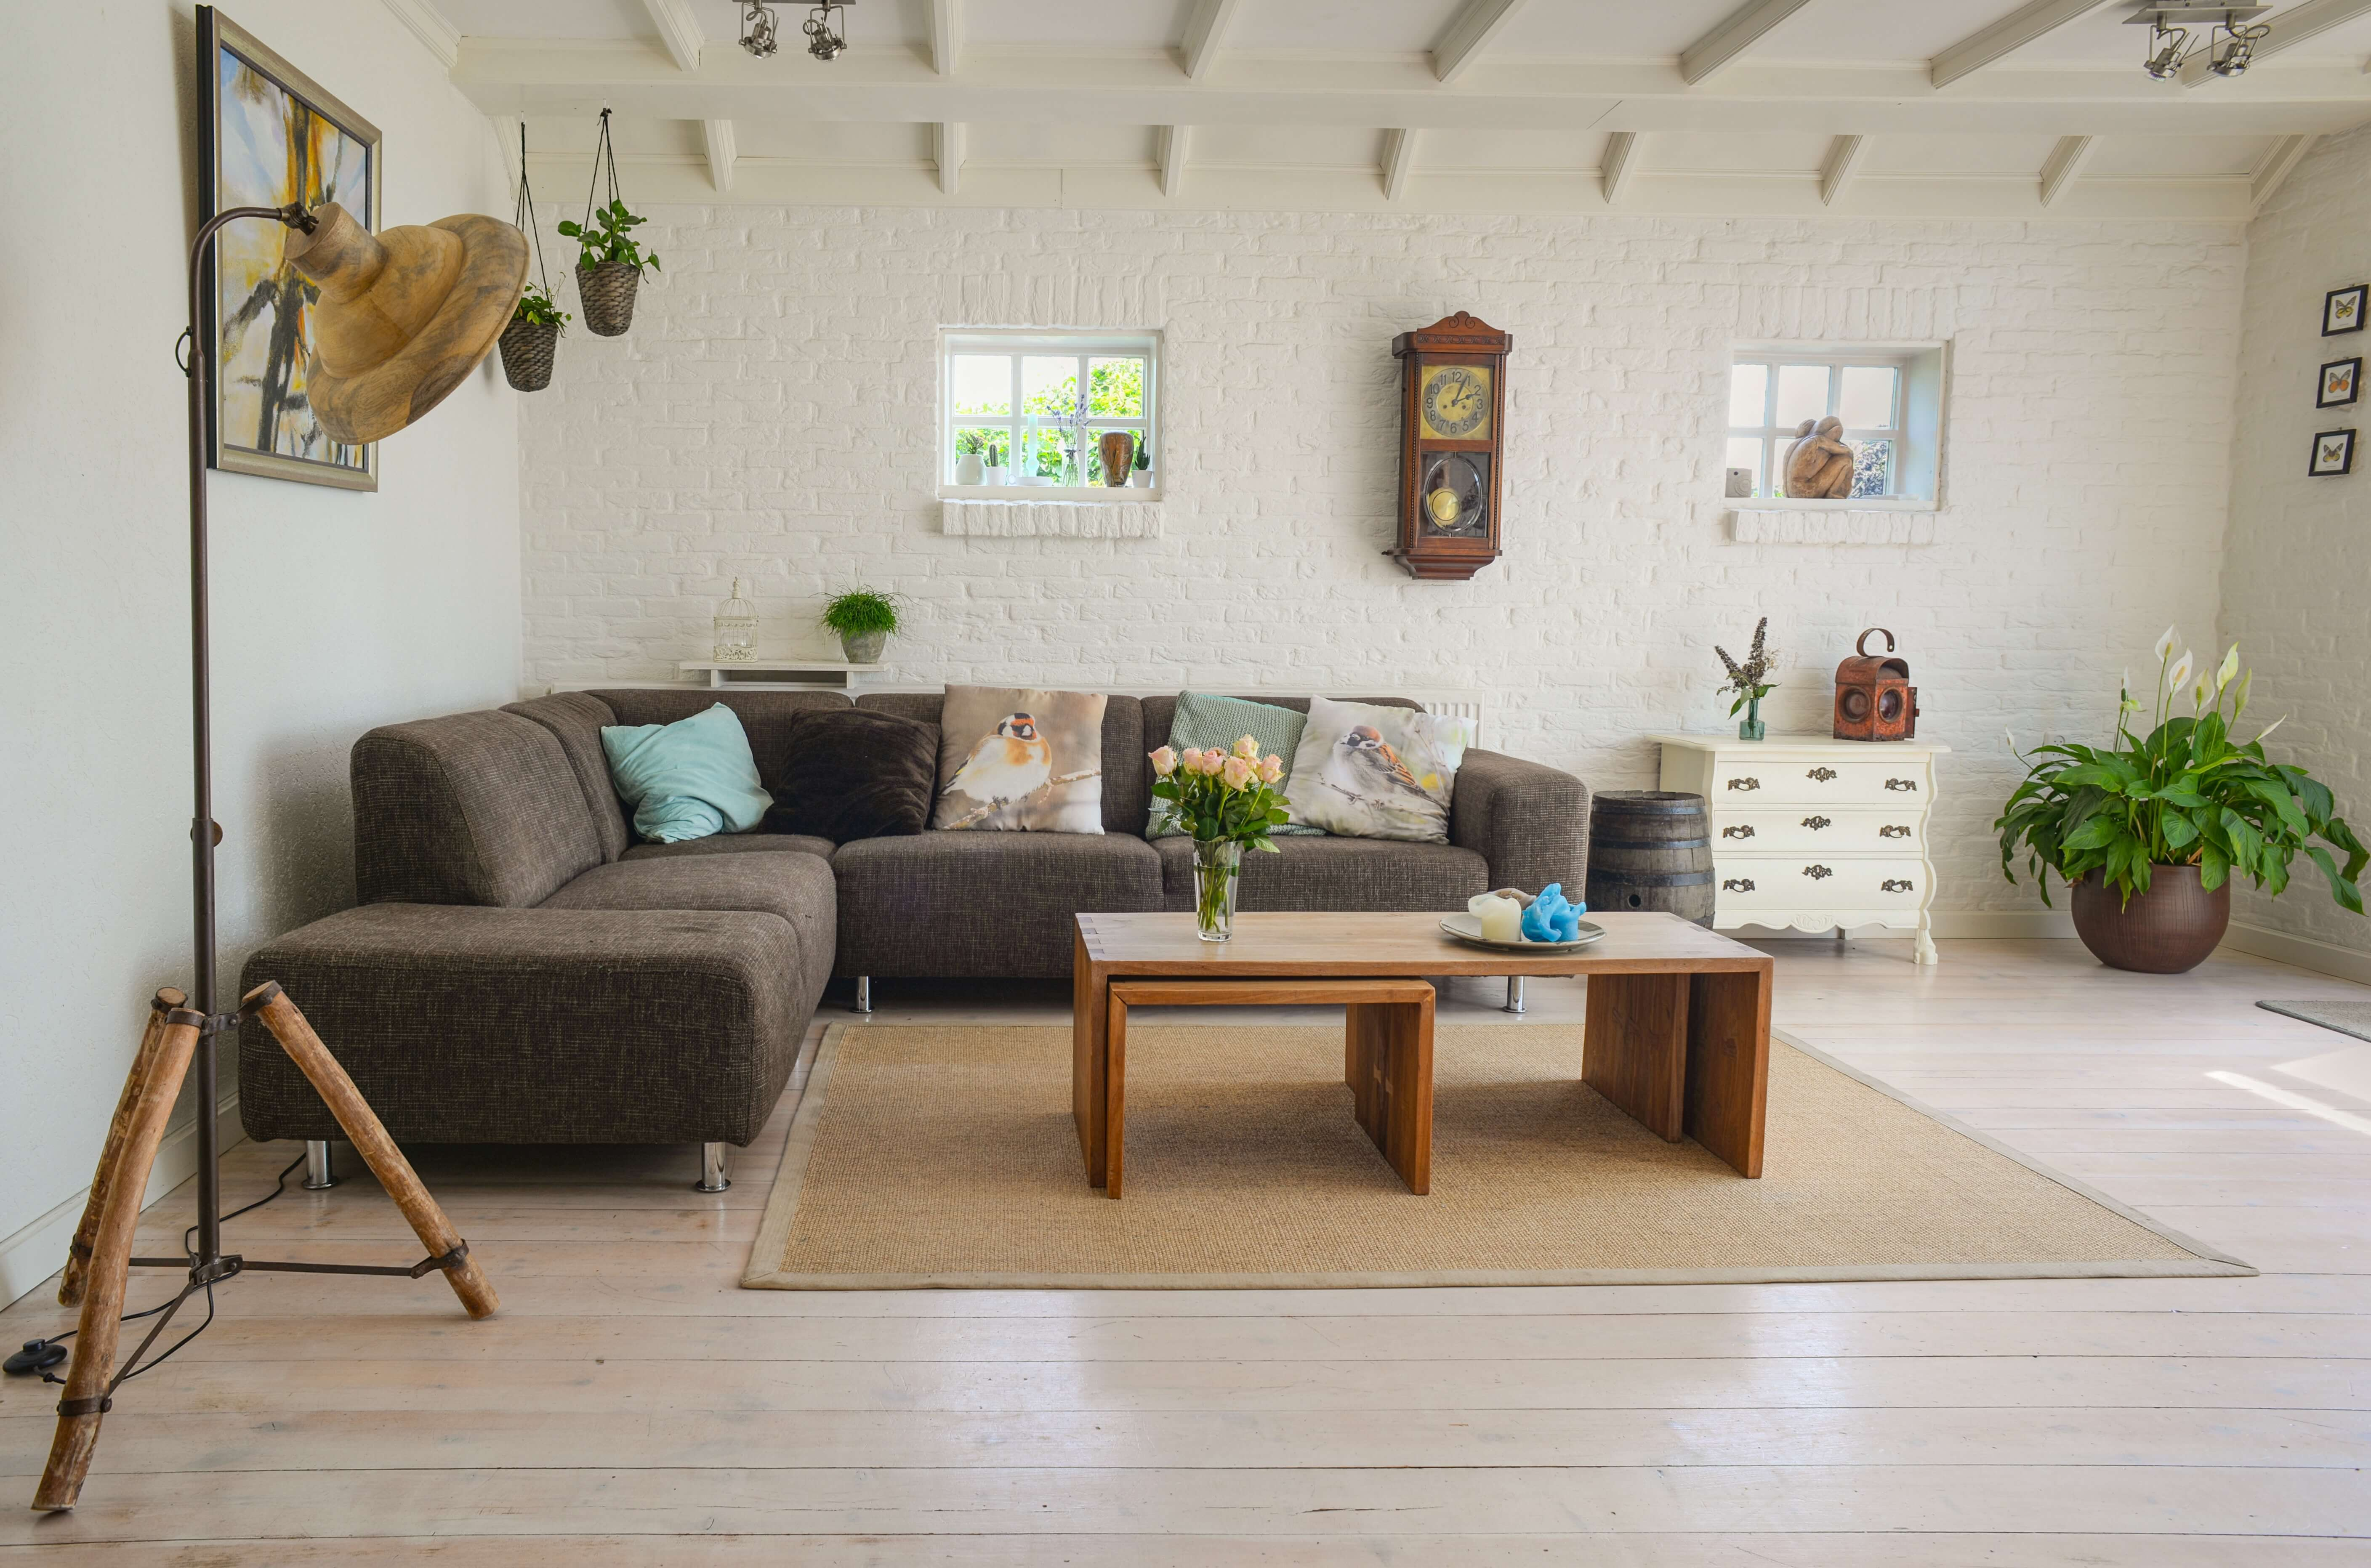 Planning Tips For Your Home's Interior Design